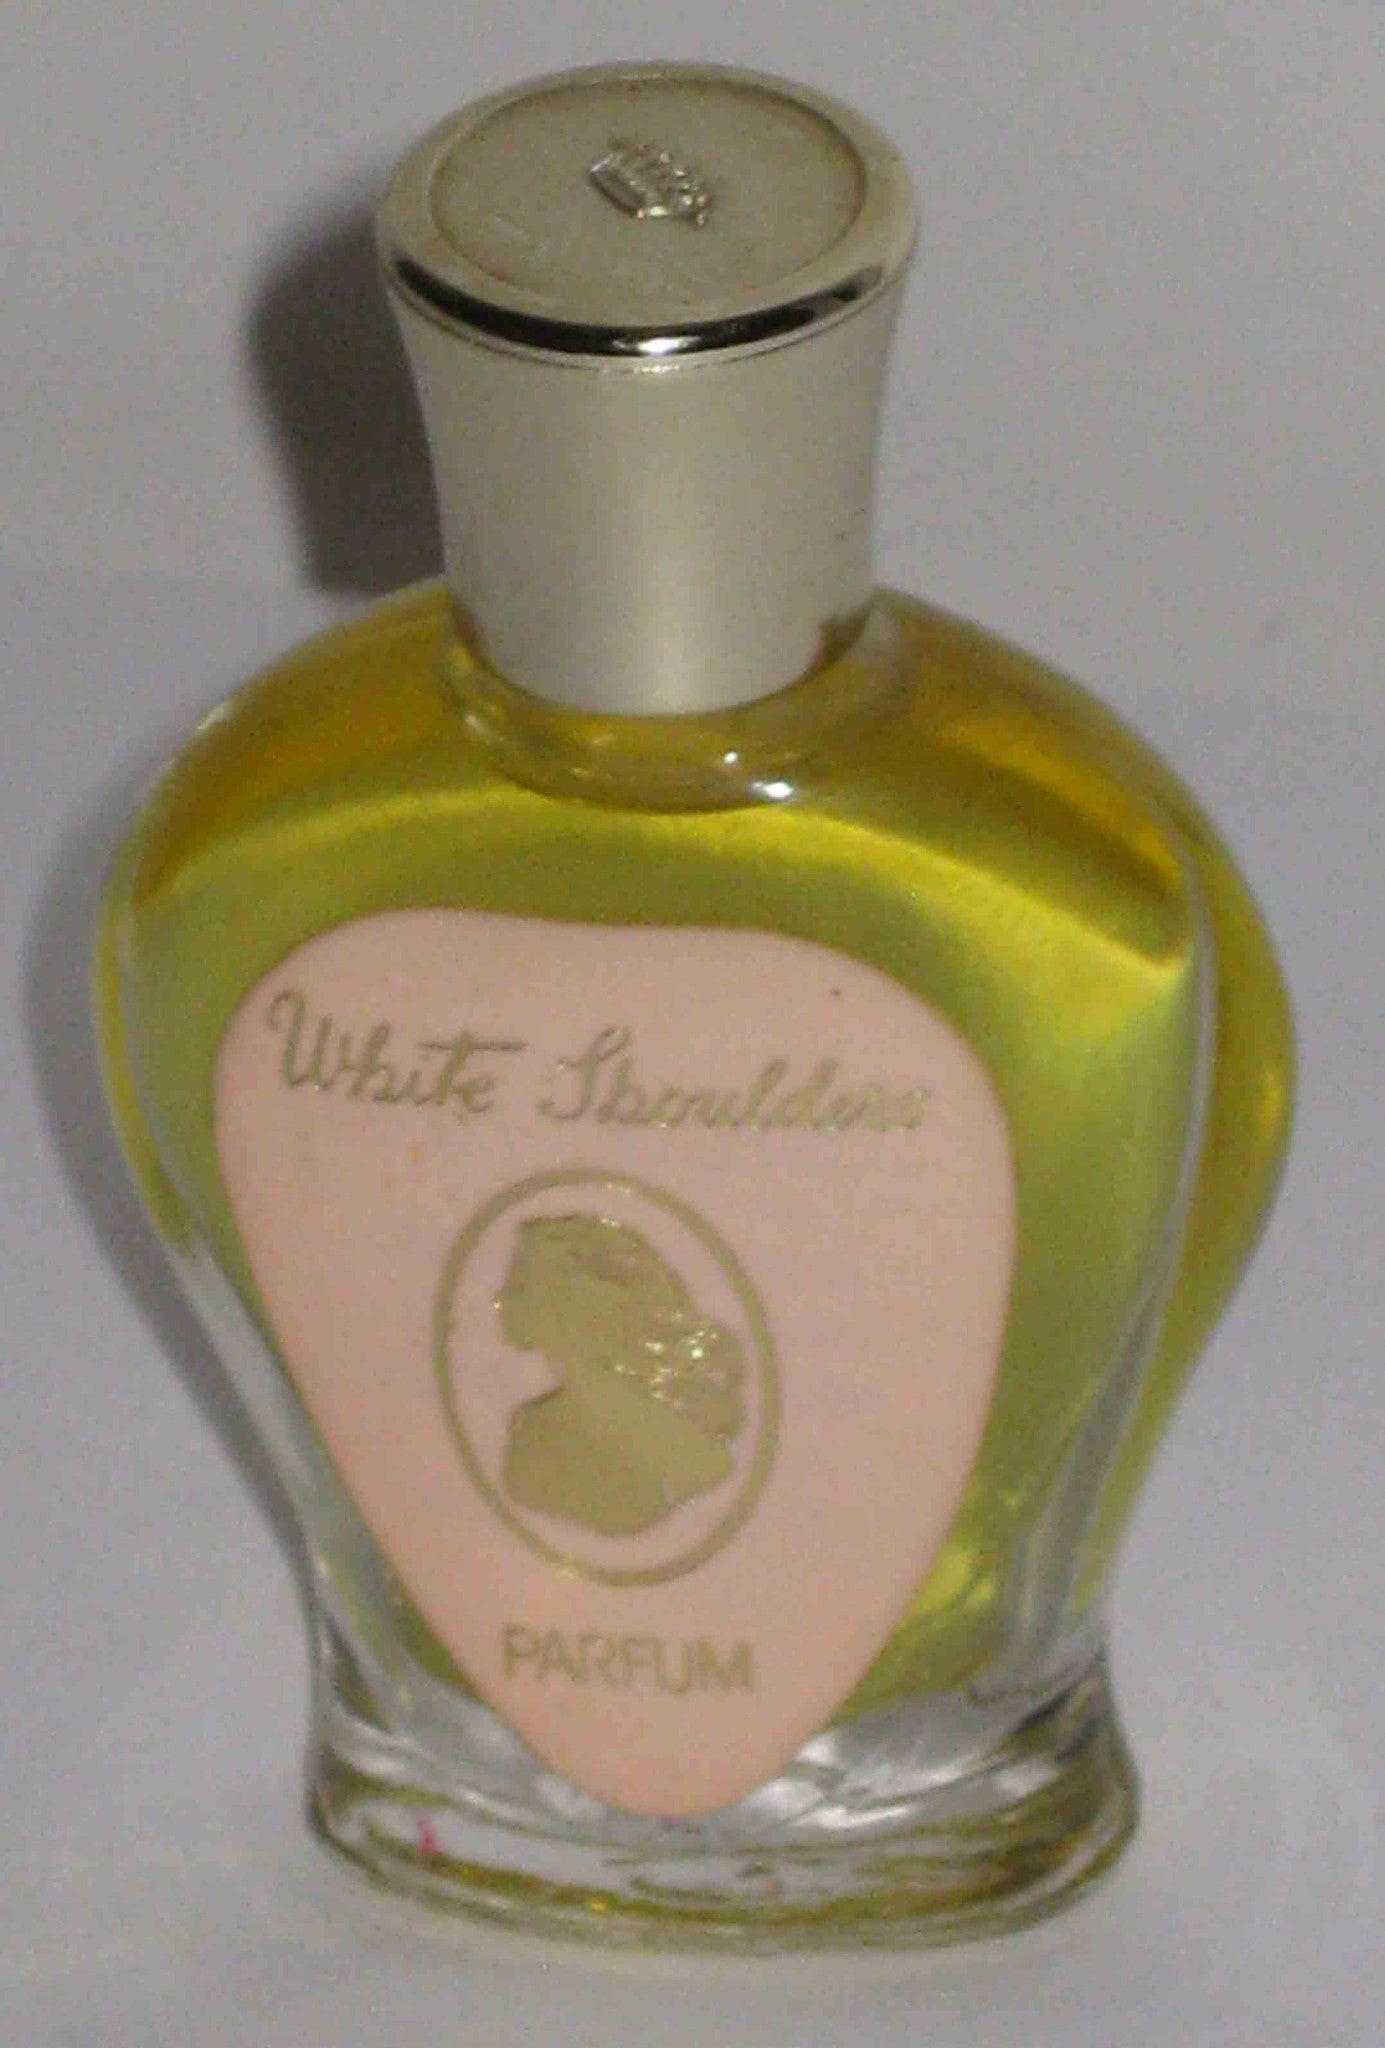 Evyvan White Shoulders Perfume Mini